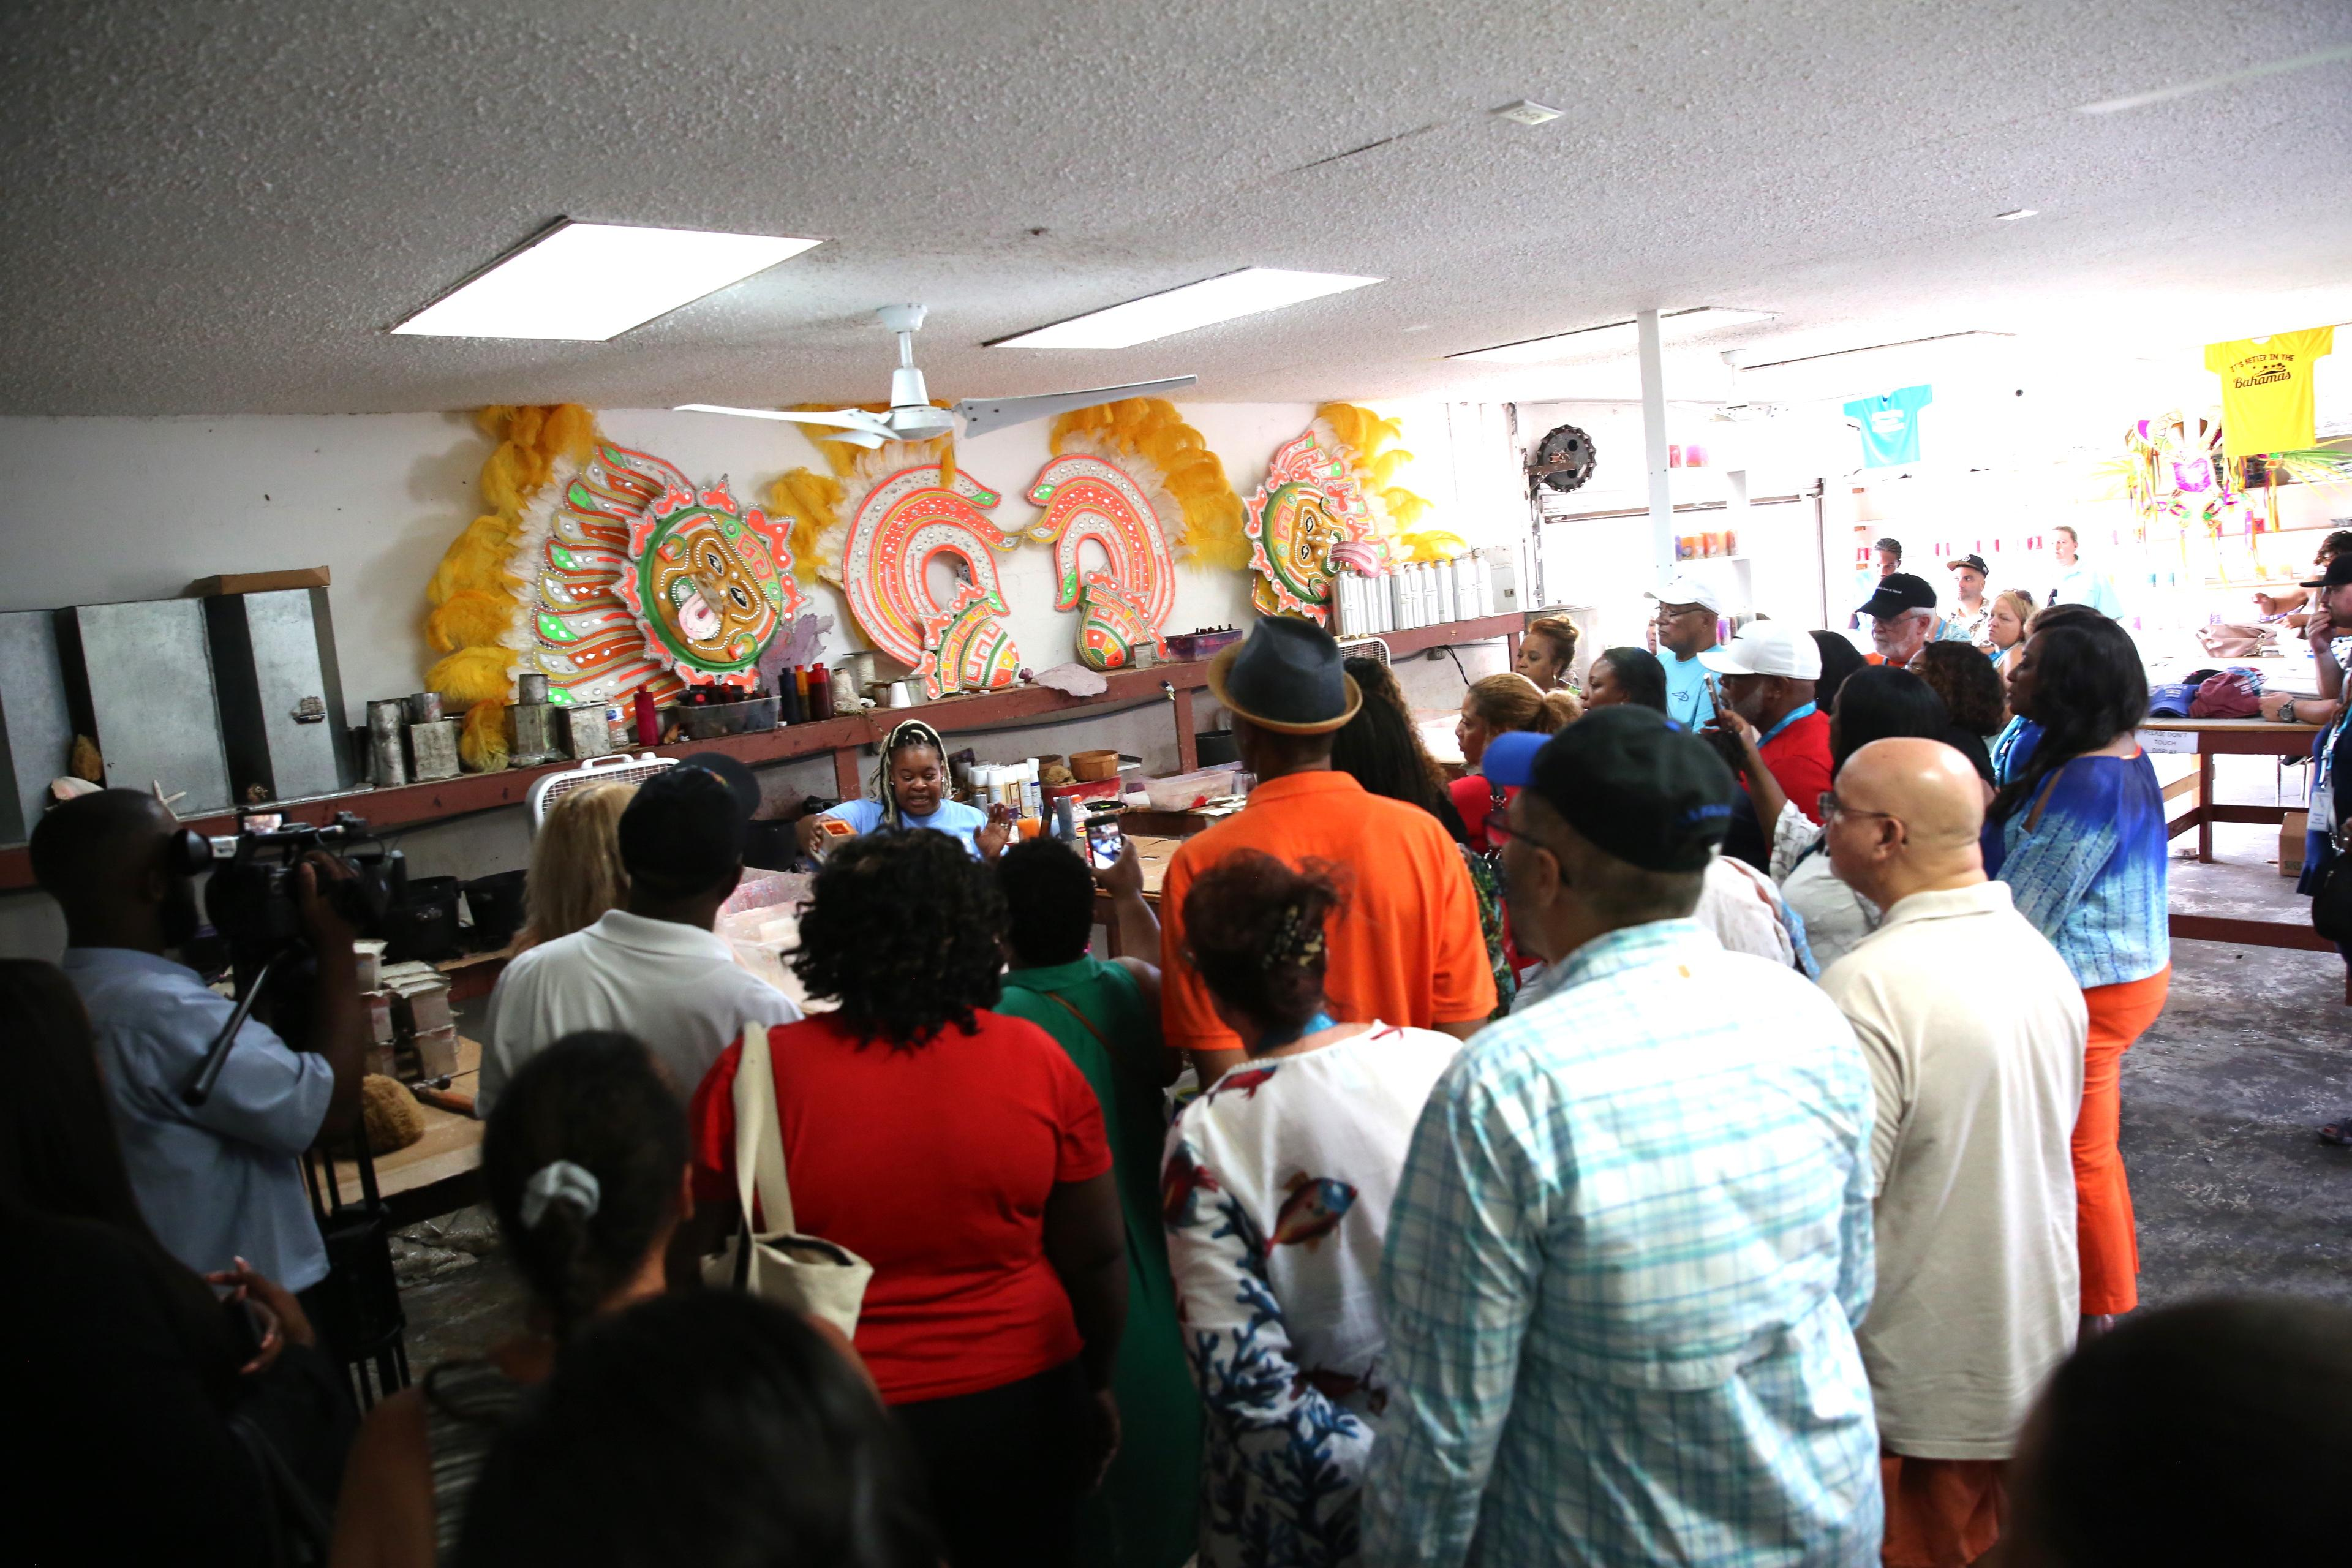 Travel agents tour the Candle Factory in Freeport